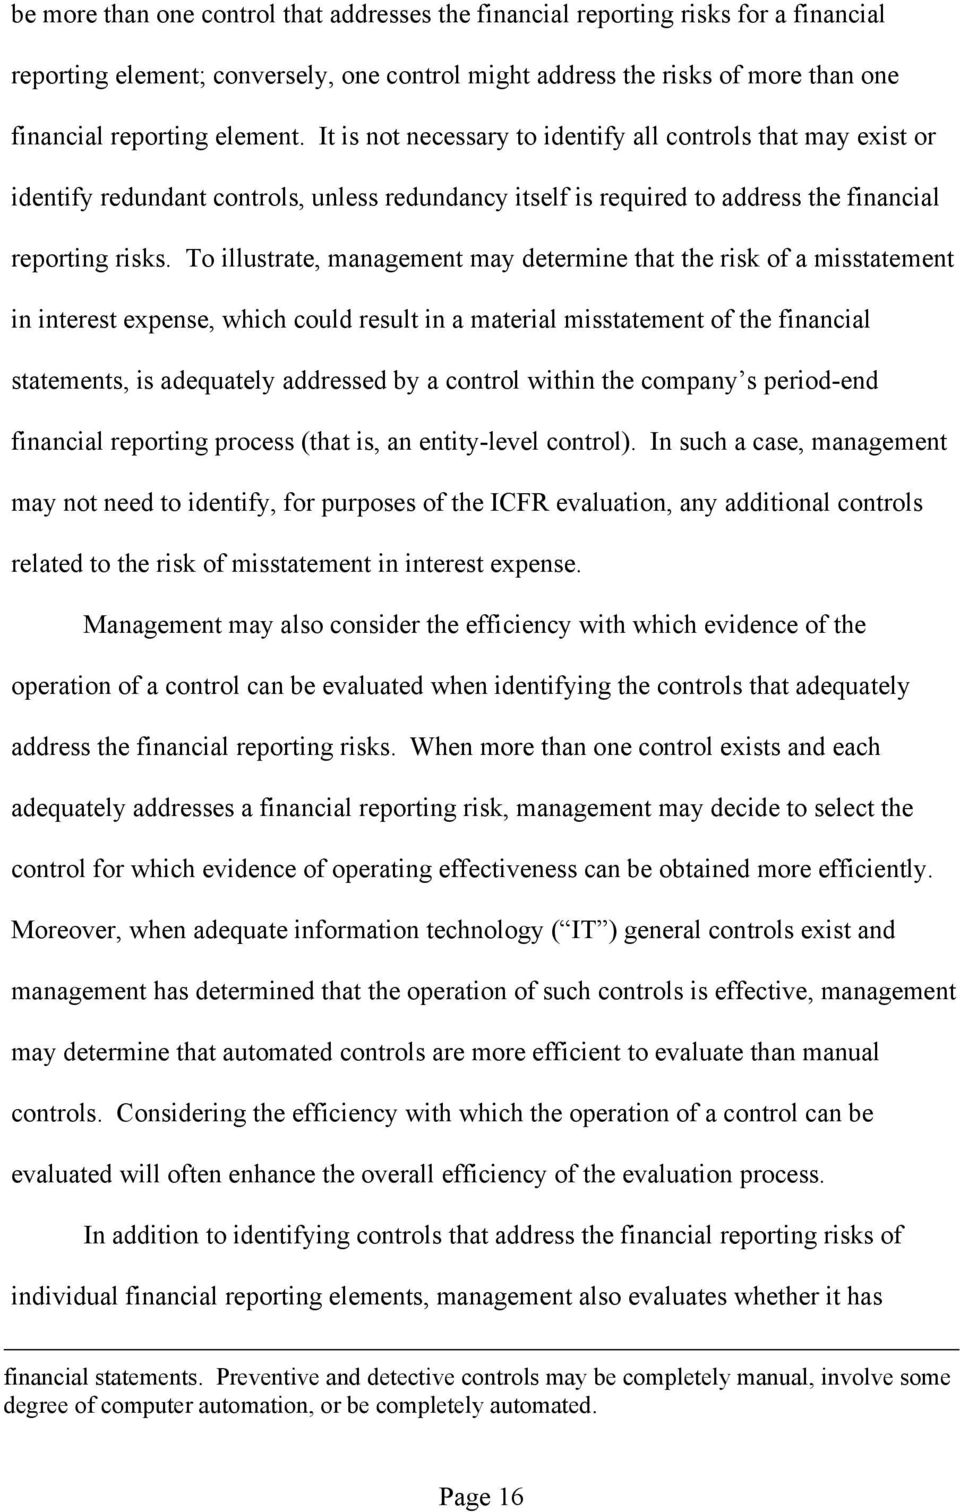 To illustrate, management may determine that the risk of a misstatement in interest expense, which could result in a material misstatement of the financial statements, is adequately addressed by a